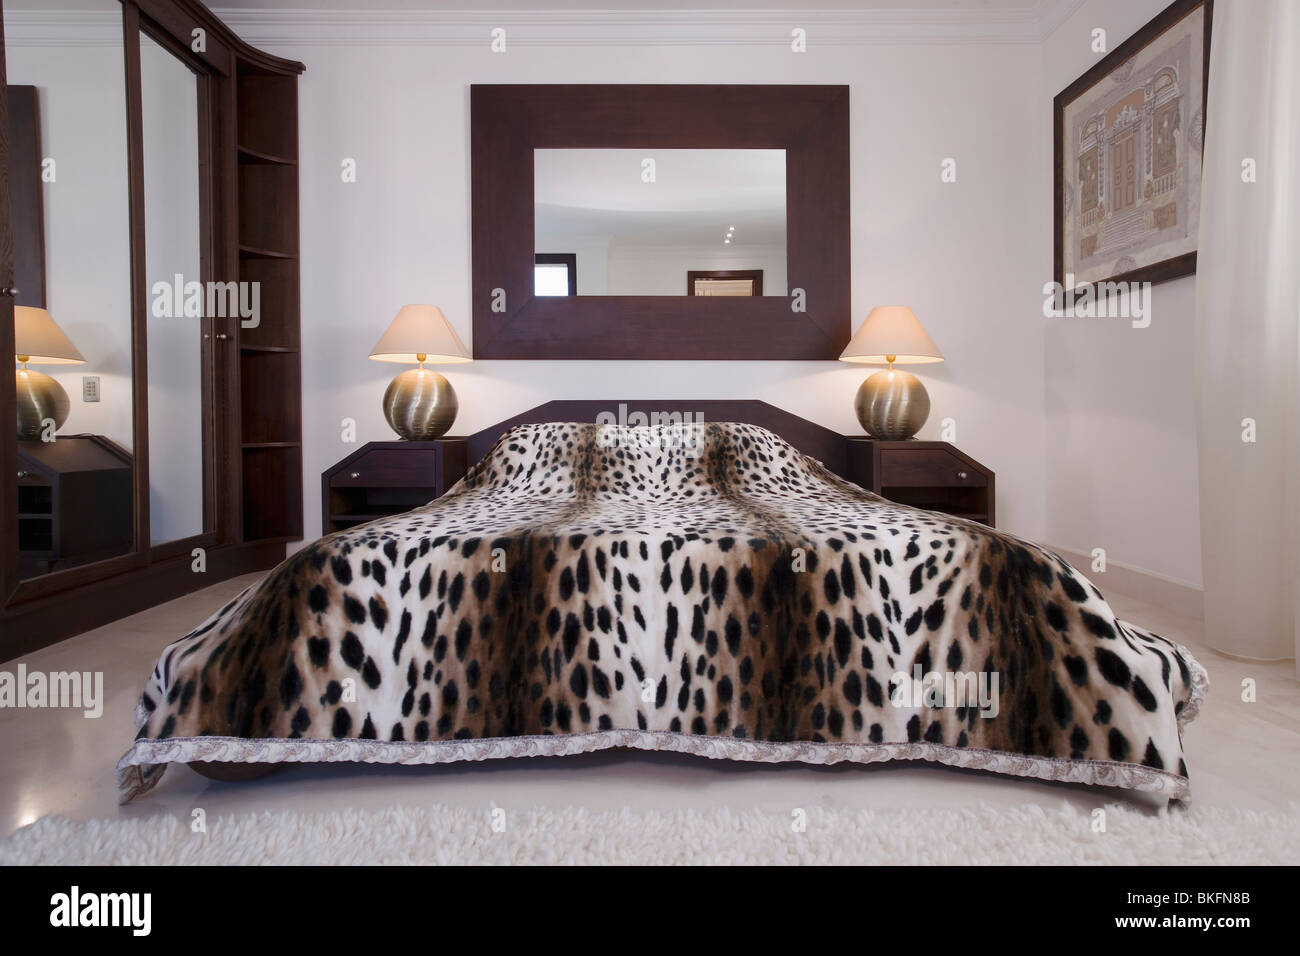 Large Mirror Above Bed With Faux Leopardskin Bed Cover In Modern Bedroom  With Lighted Lamps On Bedside Tables